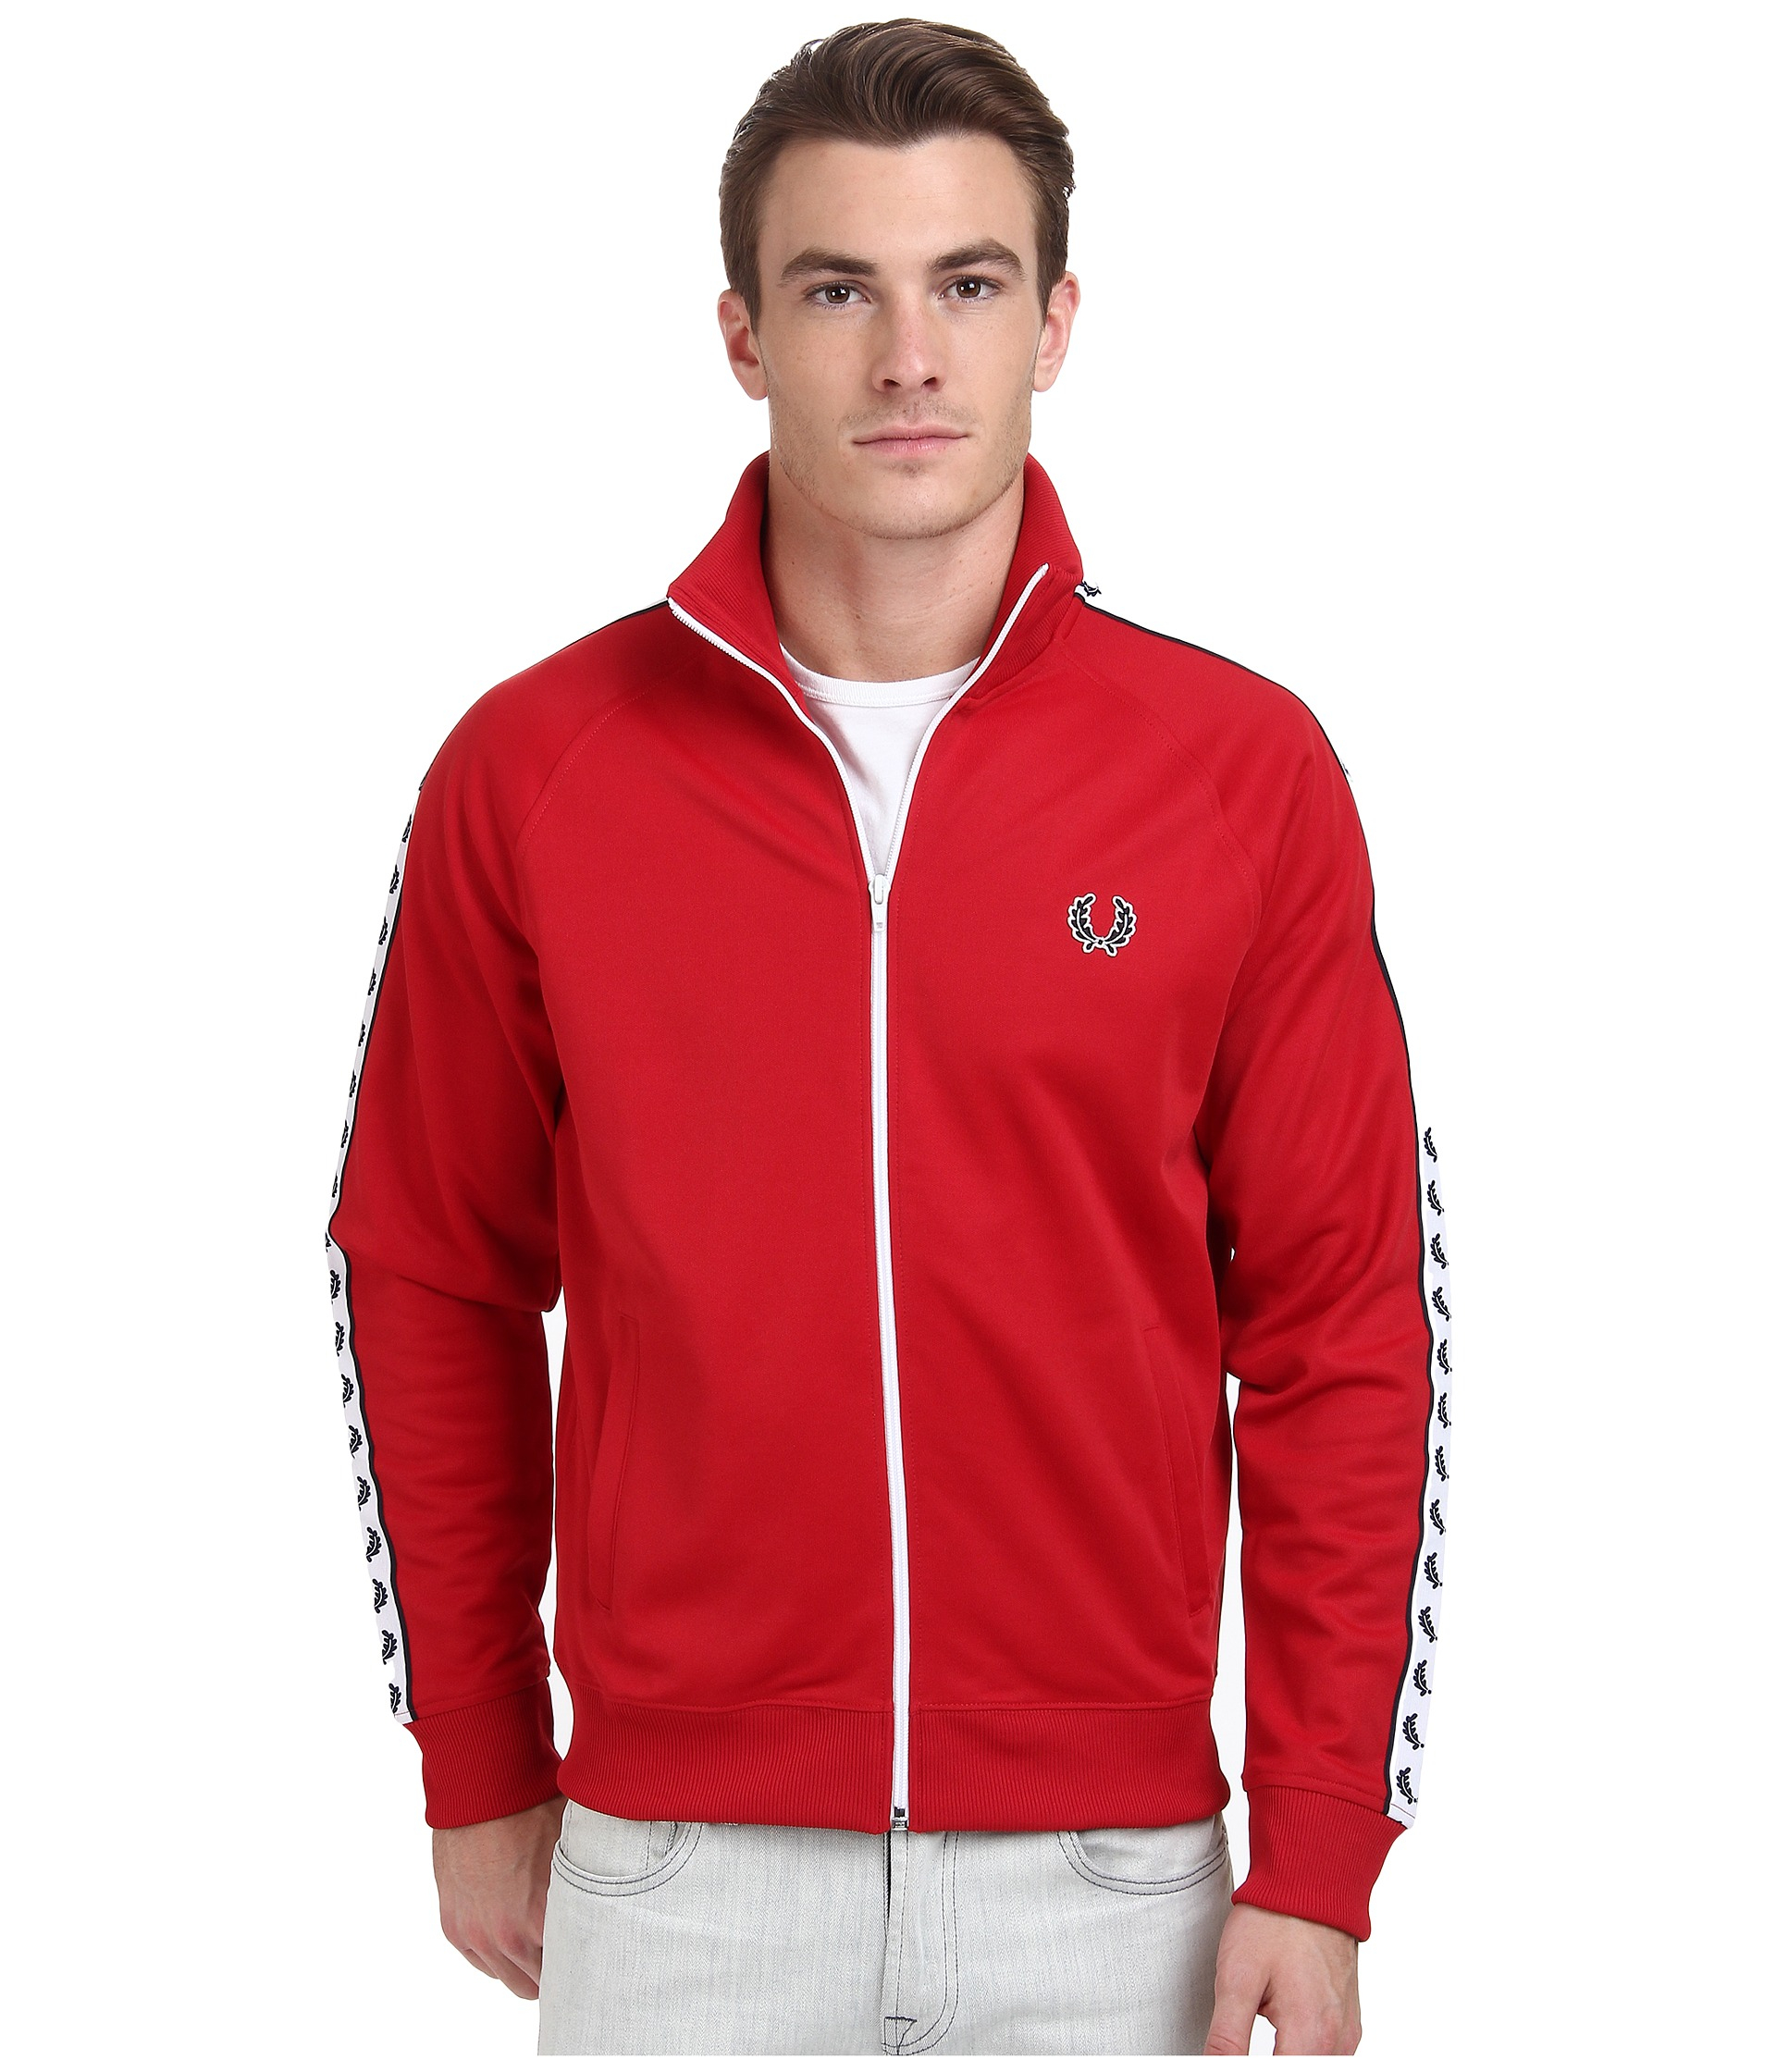 bcffe8bf6 Fred Perry Laurel Taped Track Jacket in Red for Men - Lyst